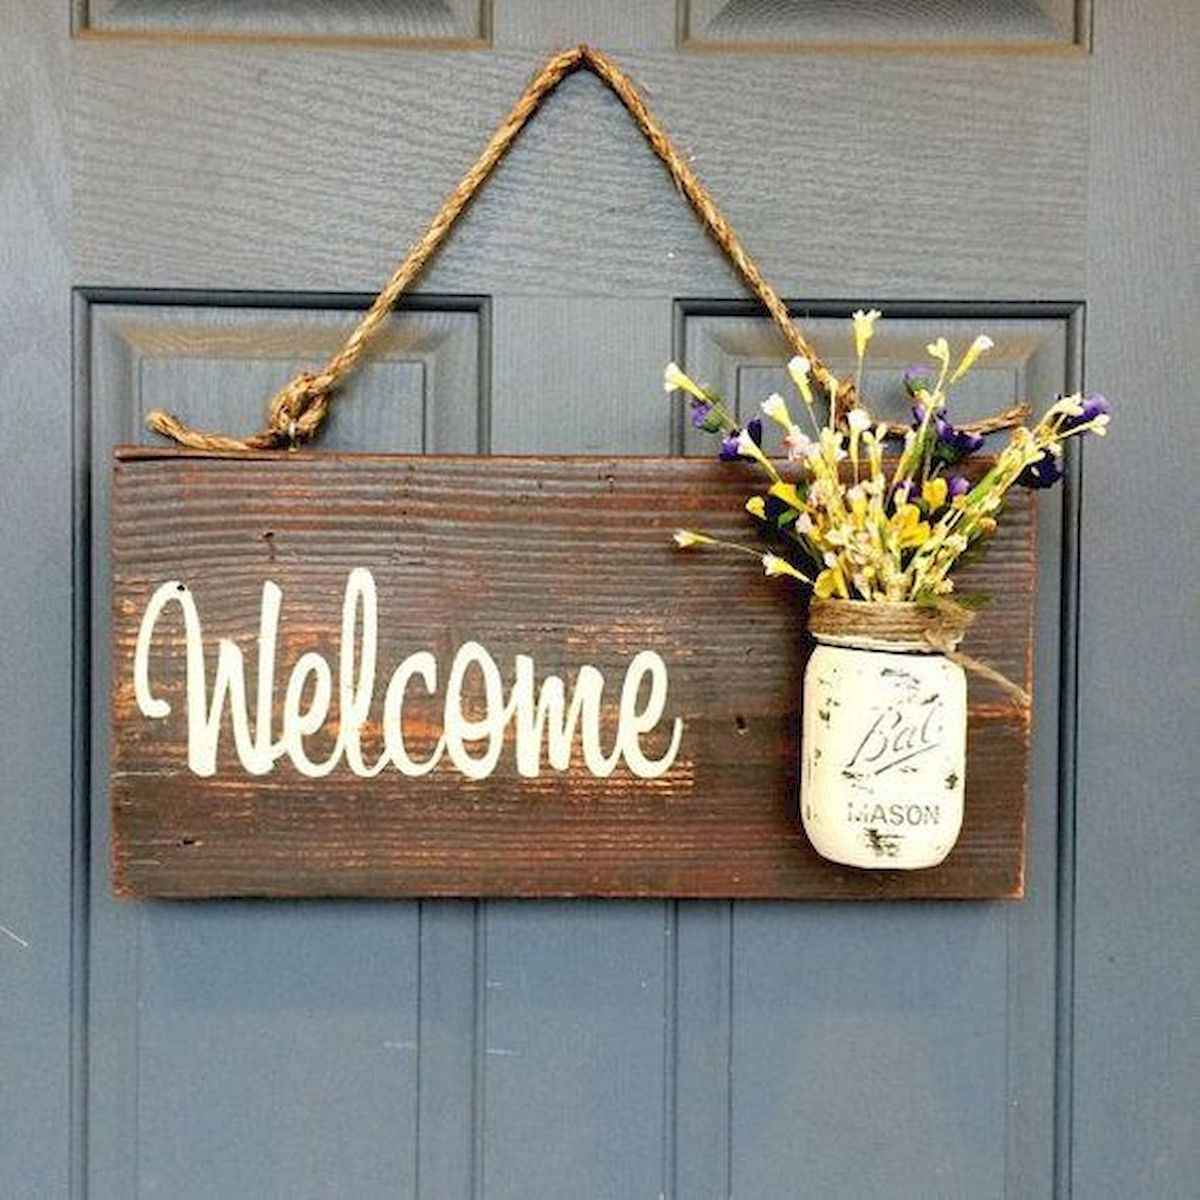 60 Favorite Spring Wreaths for Front Door Design Ideas And Decor (54)